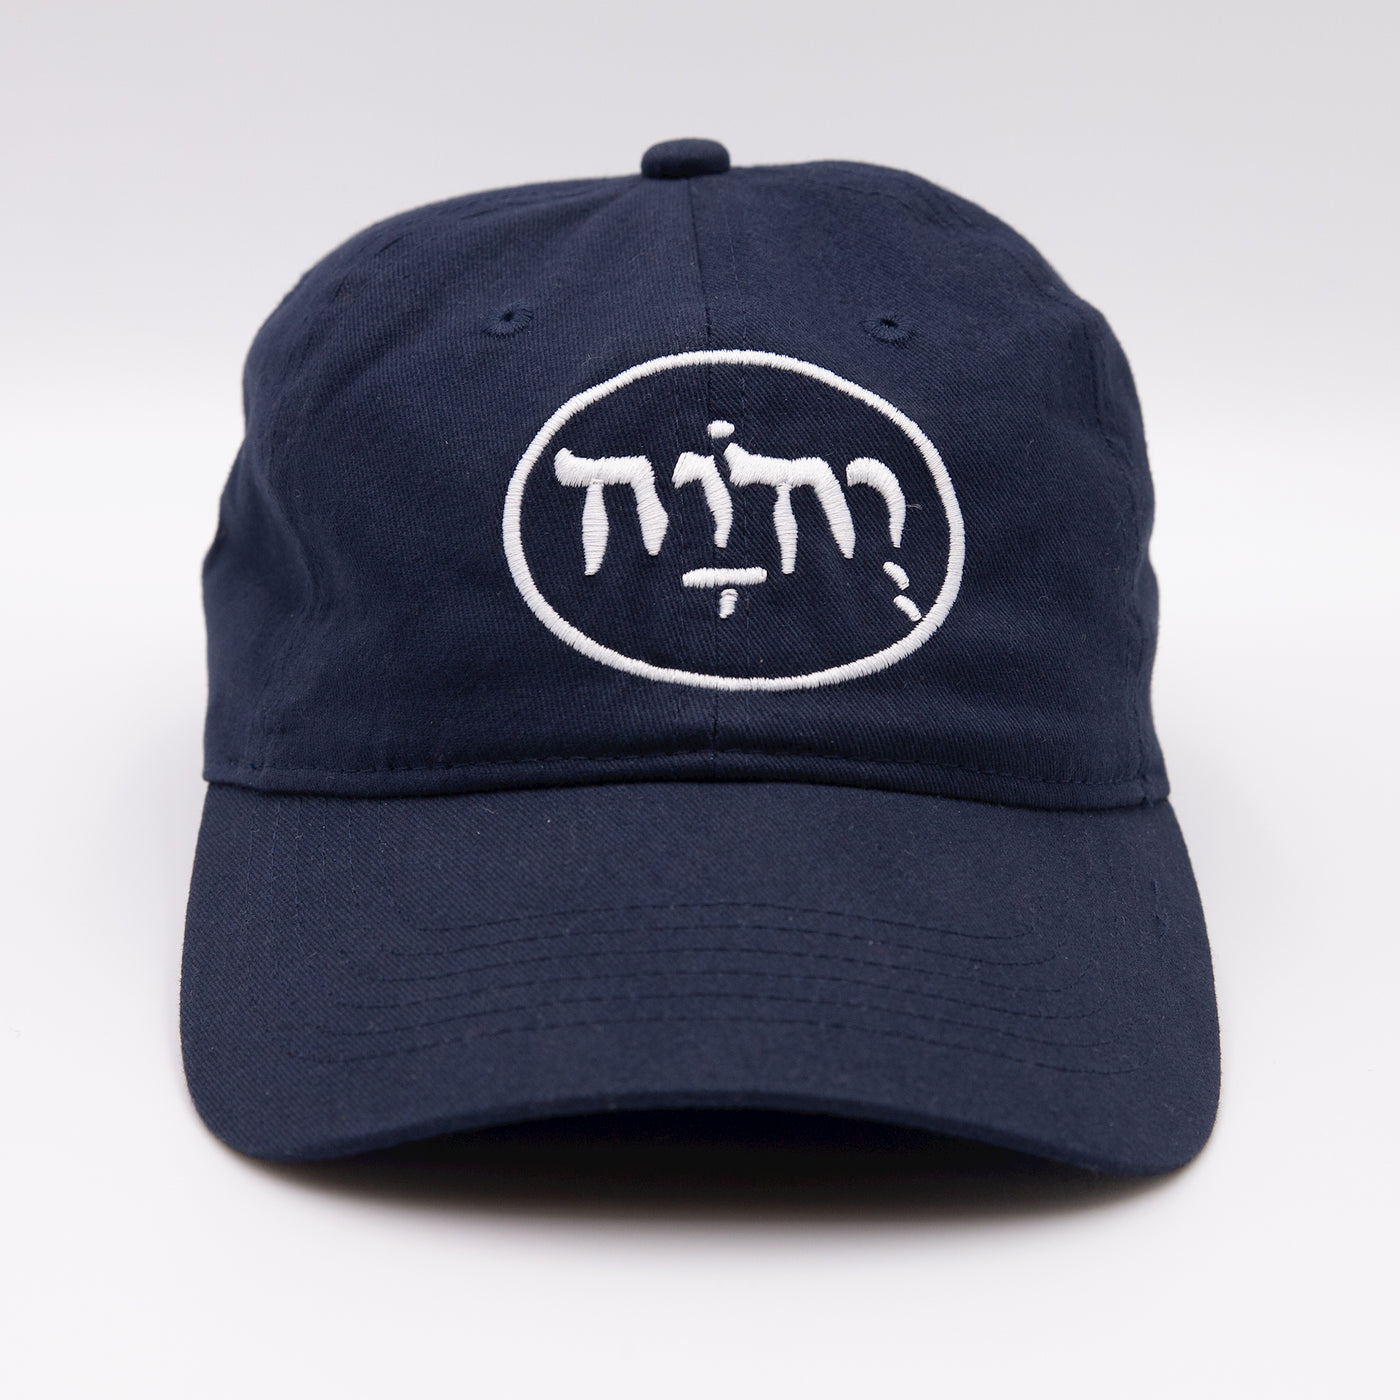 'Name of God' Hat - Navy